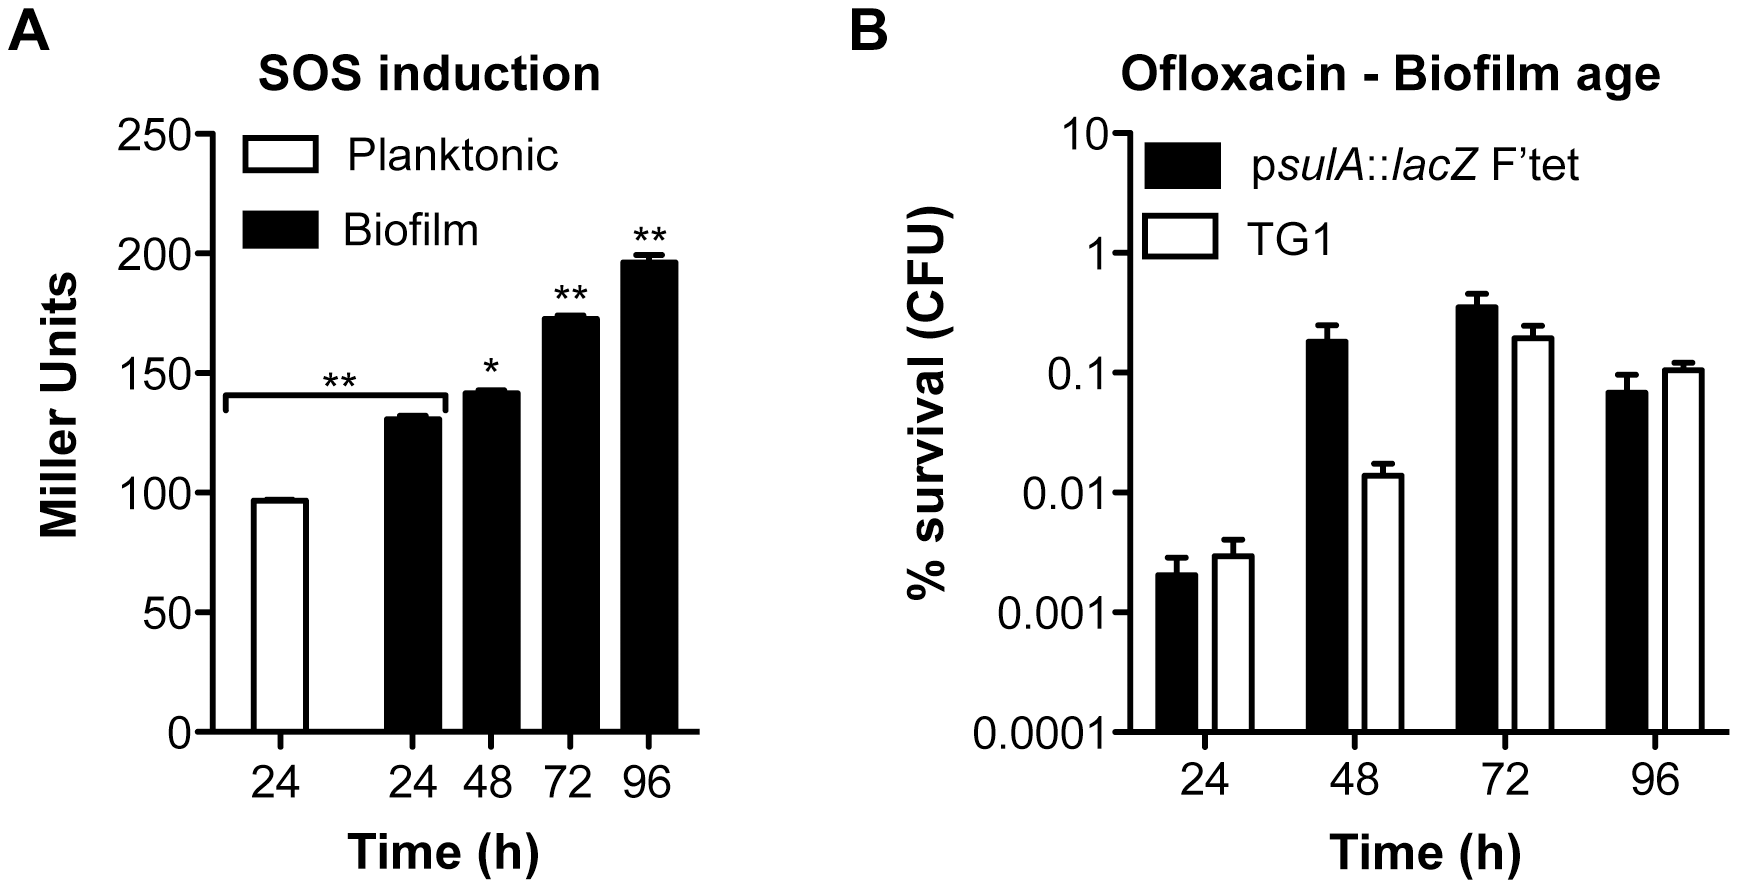 Induction of the SOS response and ofloxacin tolerance in aging biofilms.